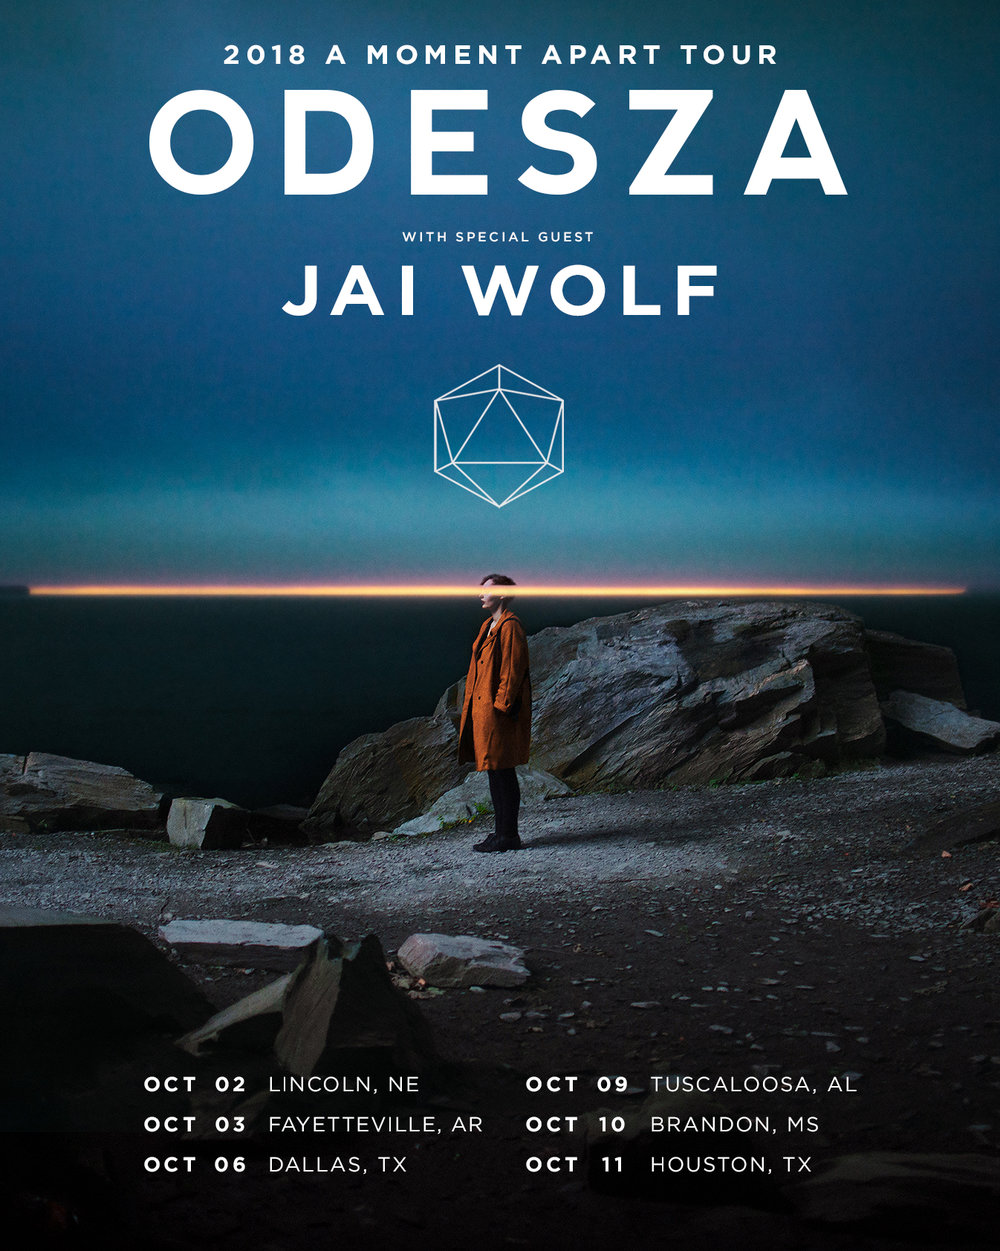 ODESZA_A-Moment-Apart_Admat_4x5_Support-Announce_Jai-Wolf.jpg